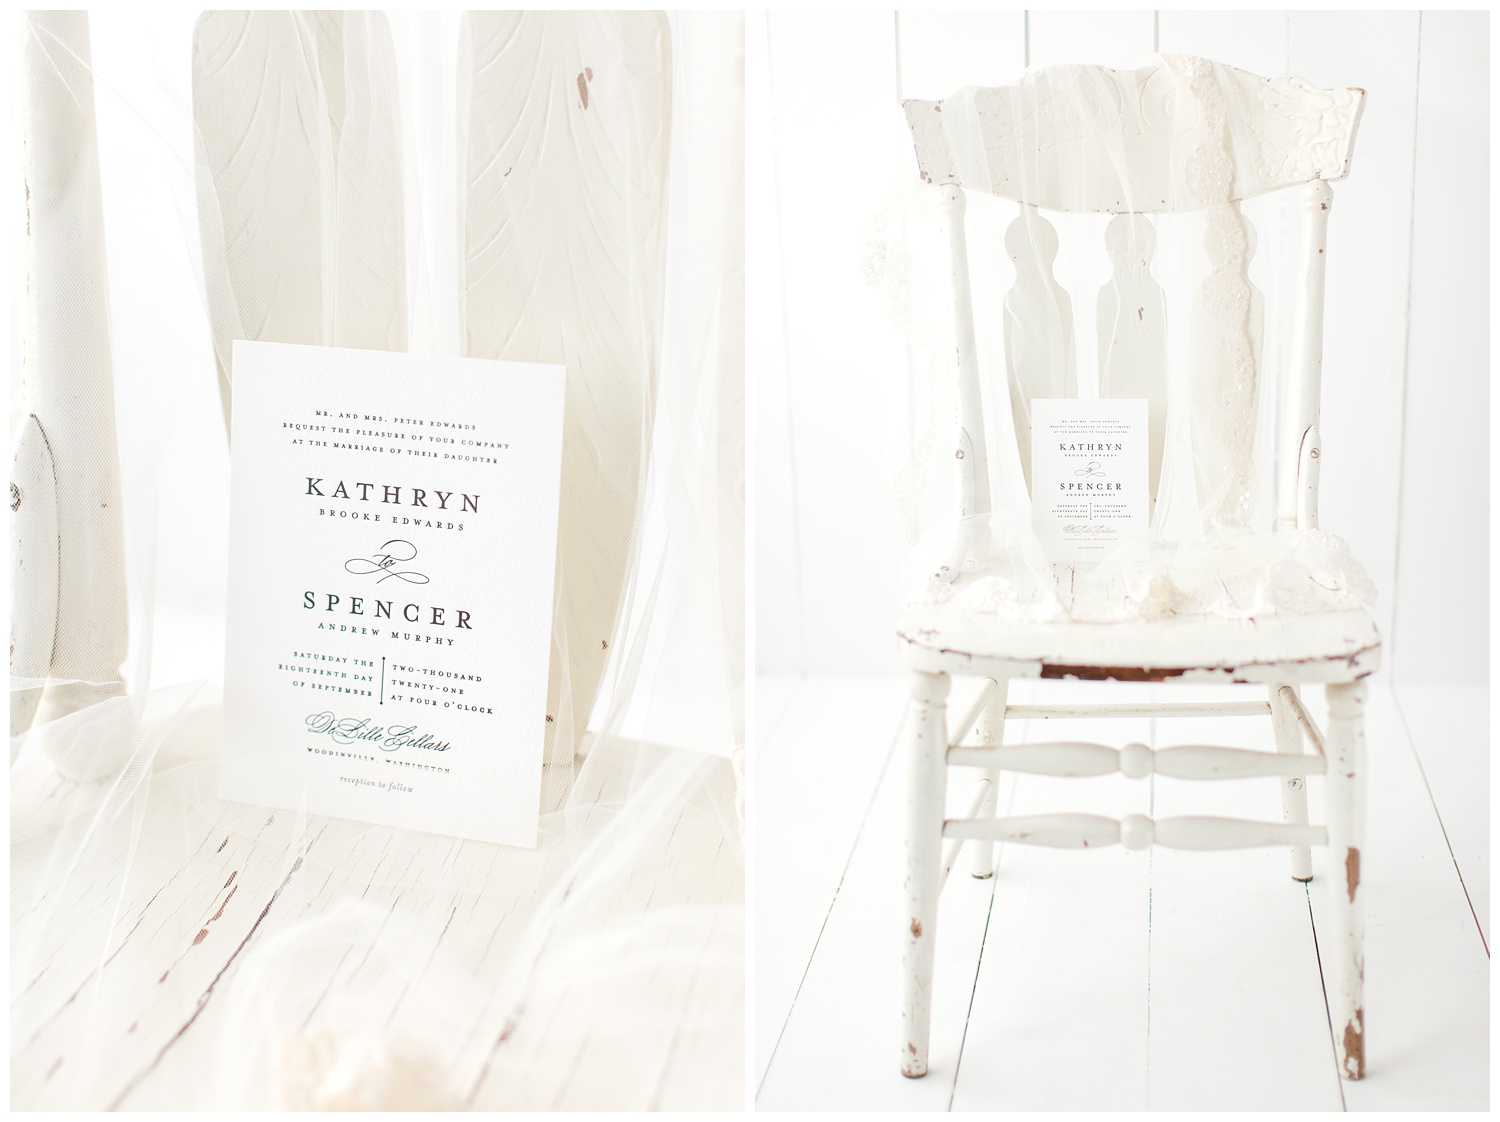 Simple white letter-pressed wedding invitation on linen paper from Minted beautifully styled with an antique white chair and wedding veil.